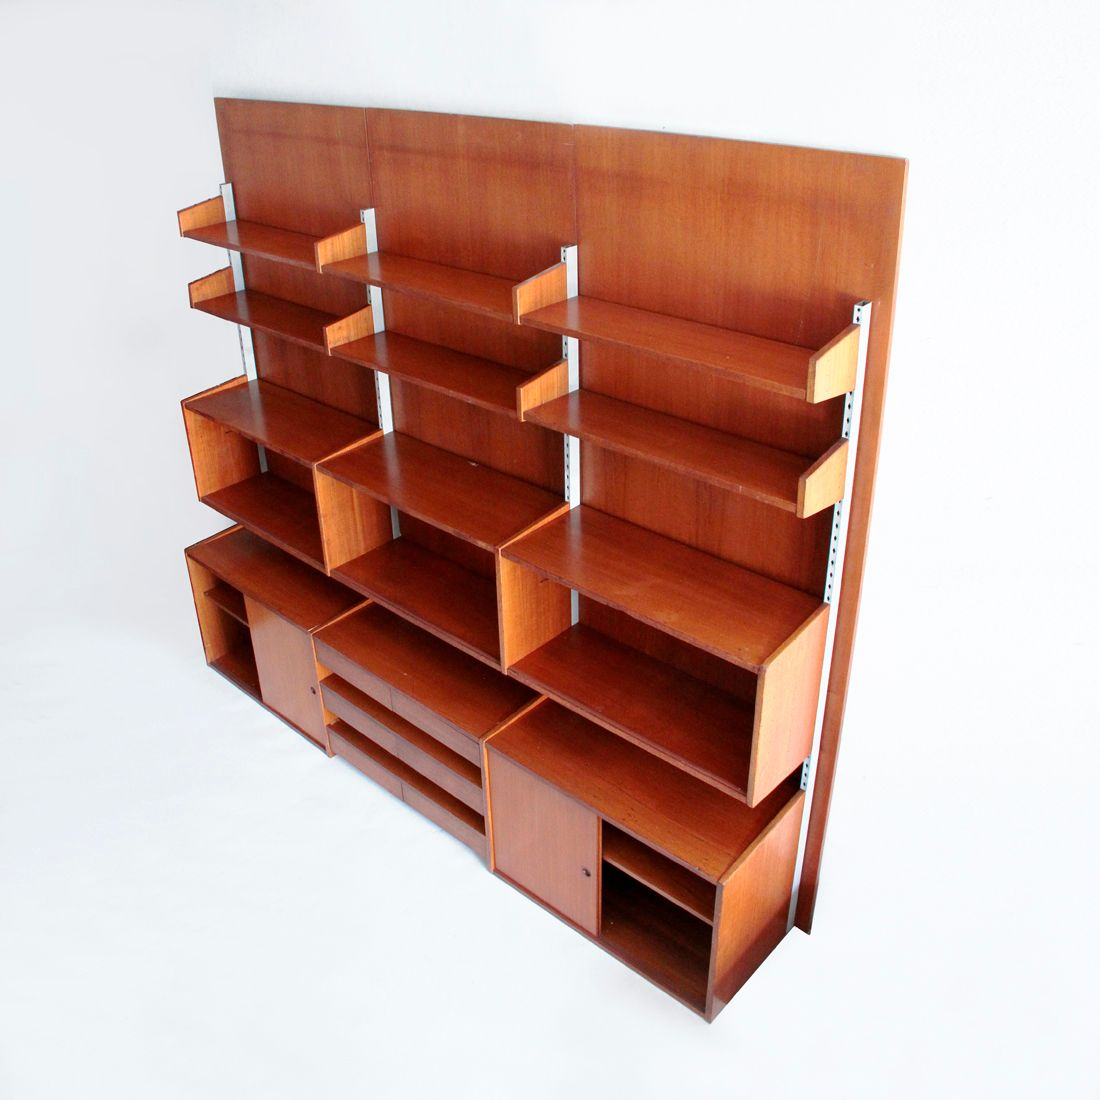 Marvelous photograph of Italian Mid Century Teak Wall Unit 1960s for sale at Pamono with #B56316 color and 1100x1100 pixels